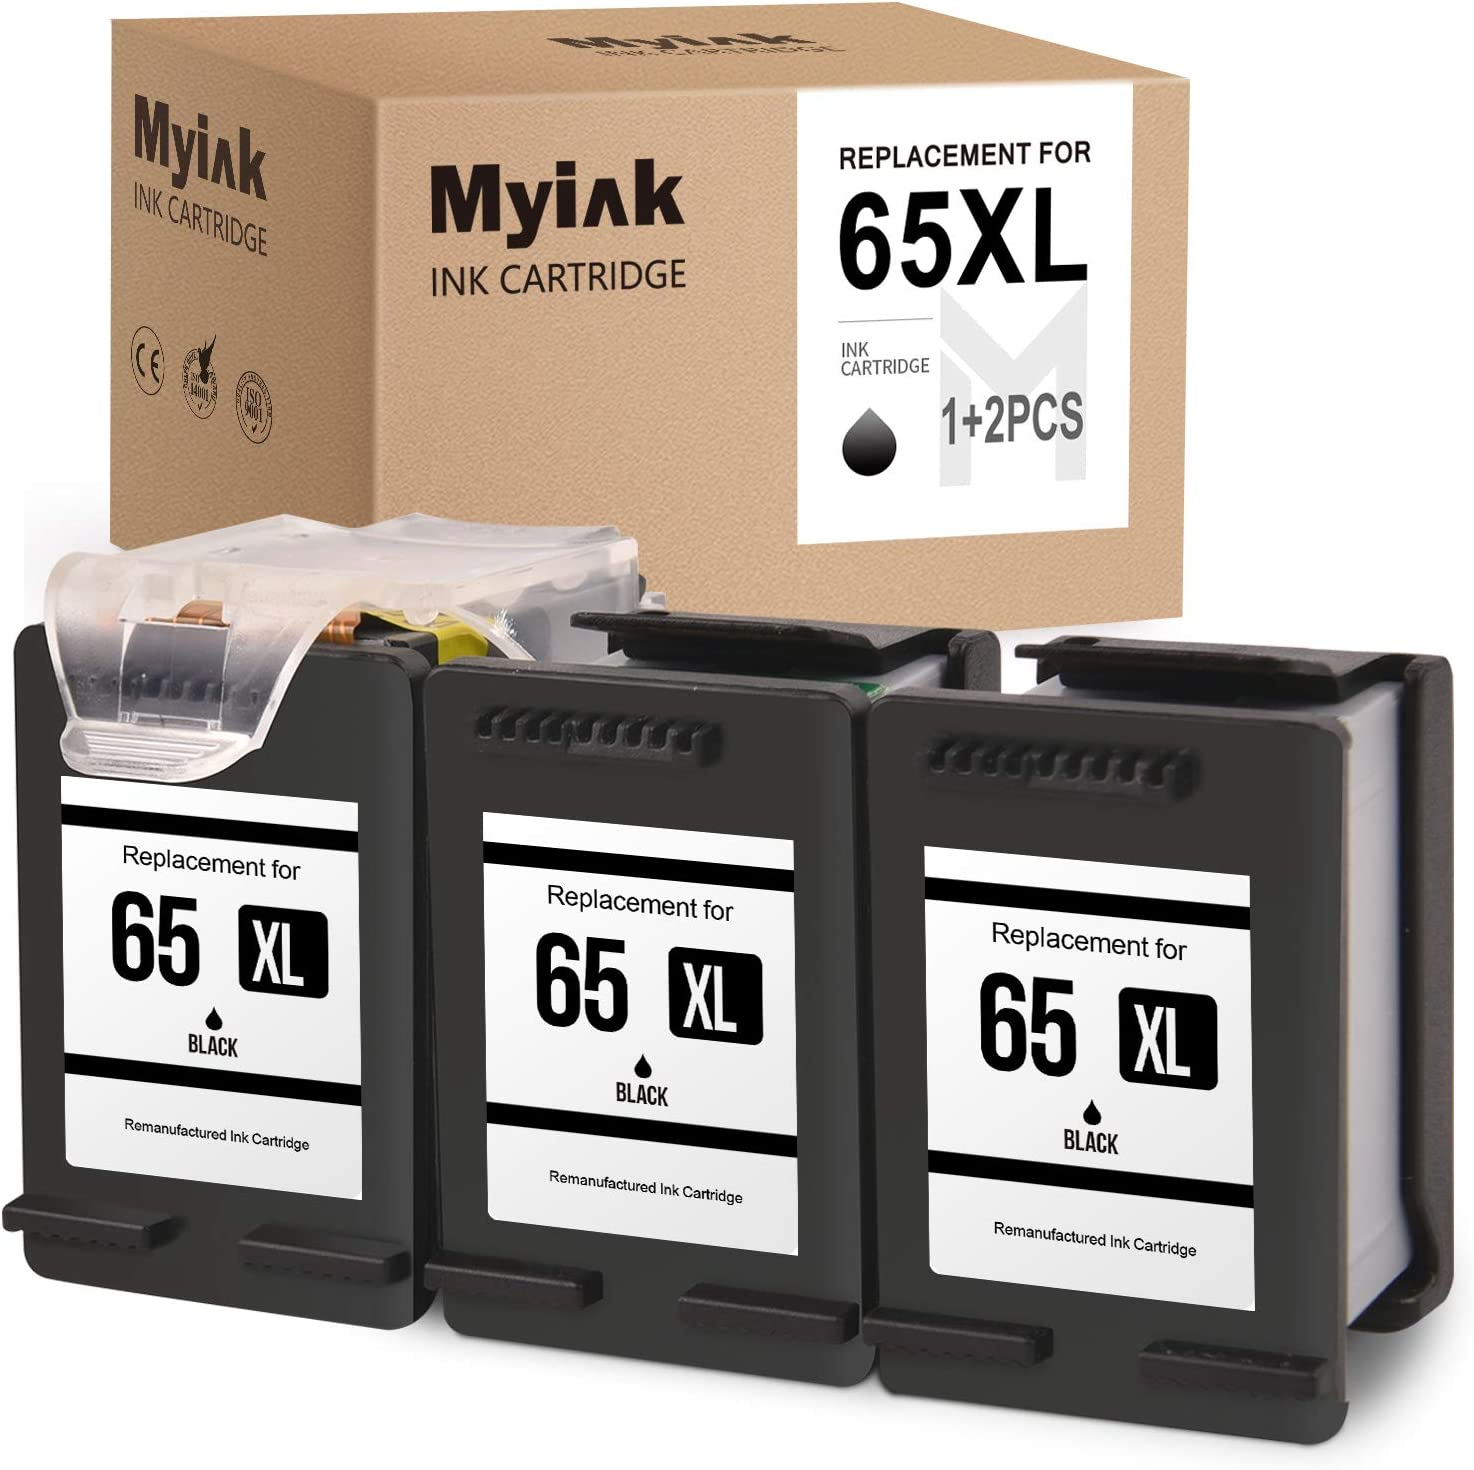 MYIK Remanufactured Ink Cartridge for HP 65XL 65 XL Eco-Saver to use with Envy 5055 5052 5012 5010 5030 DESKJET 3755 2622 3752 3720 2624 3722 3758 (1 + 2 Pack)